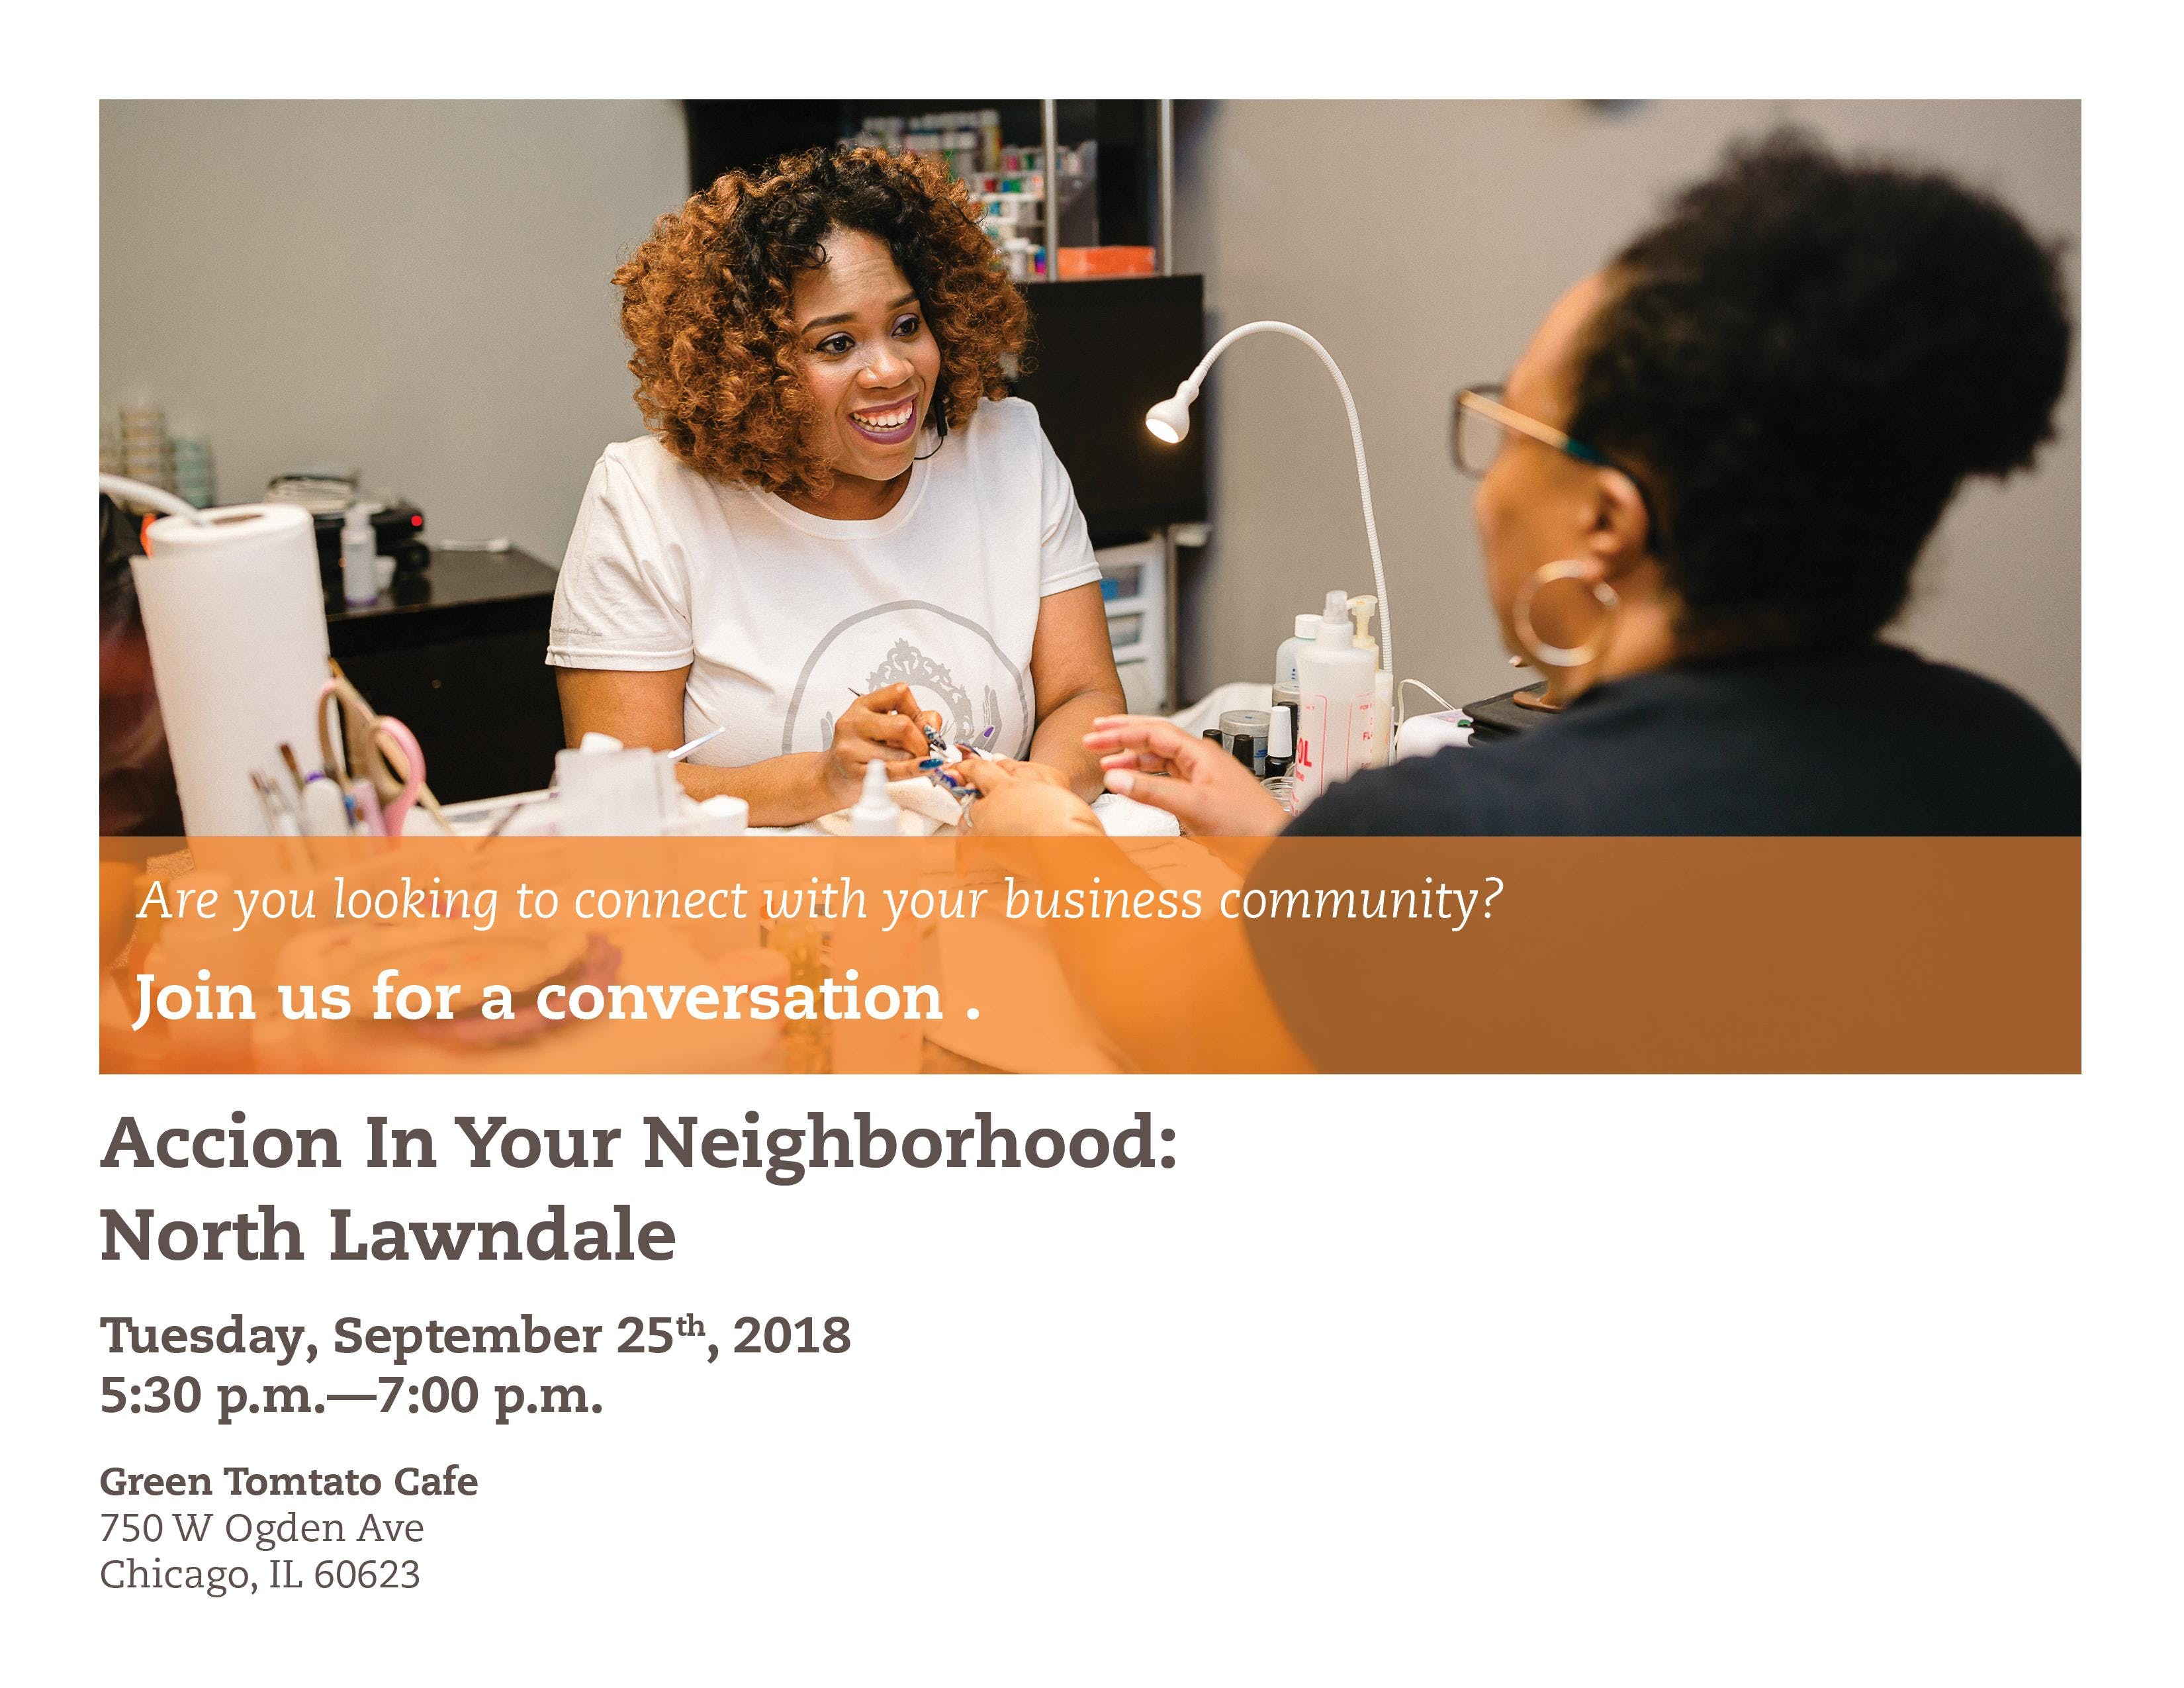 Accion In Your Neighborhood: North Lawndale